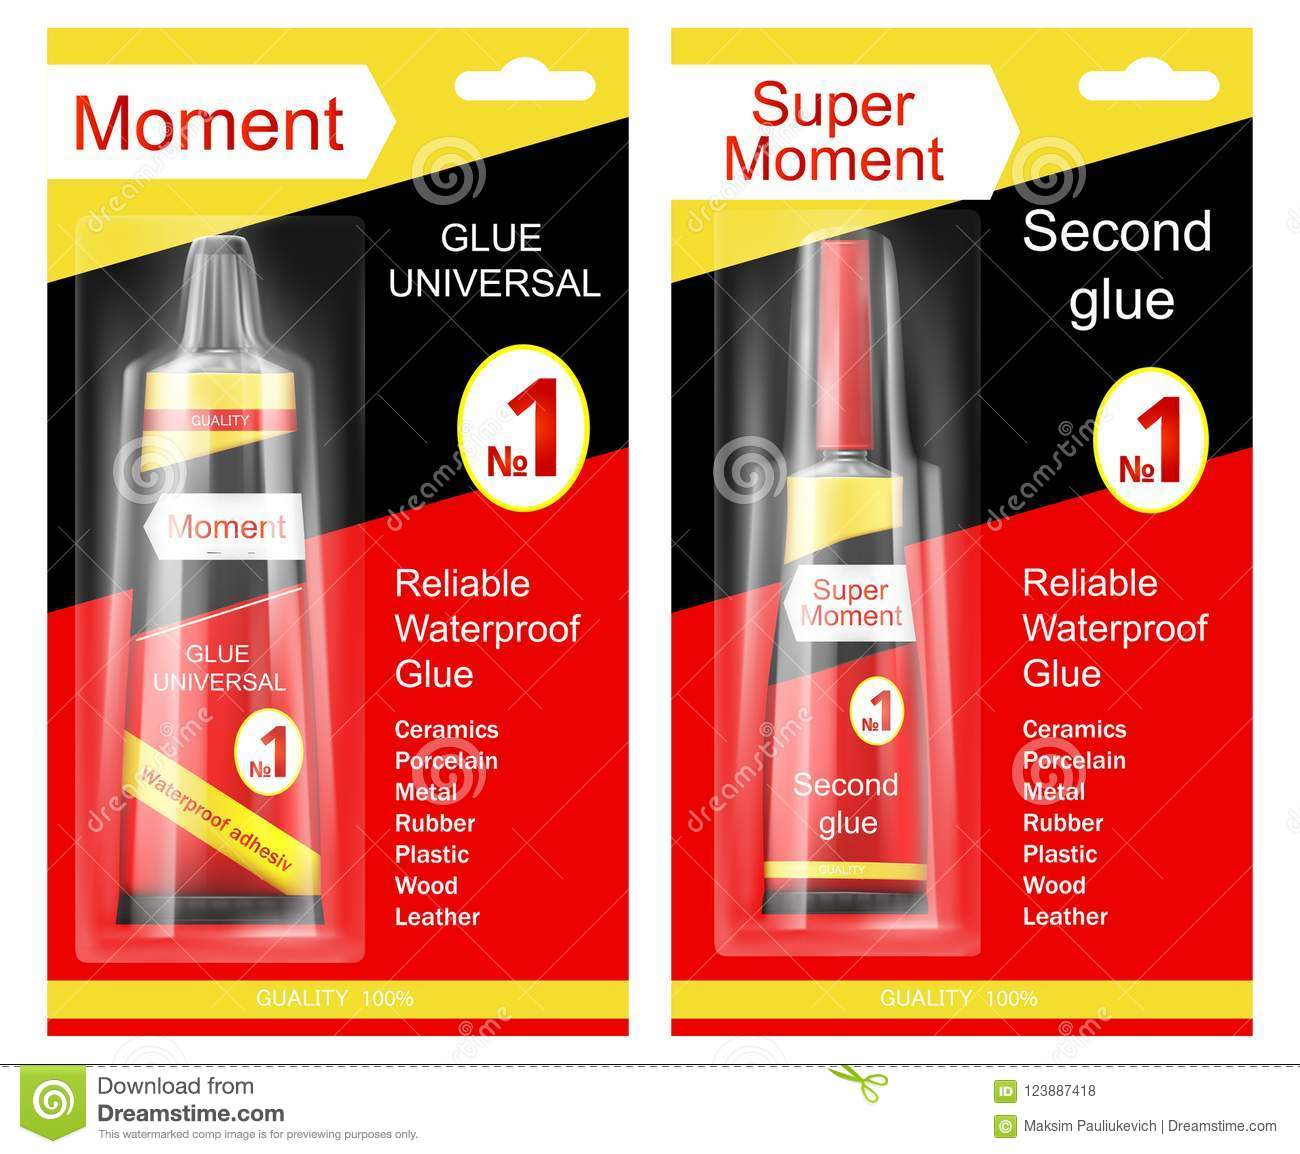 How to glue the glue moment 4